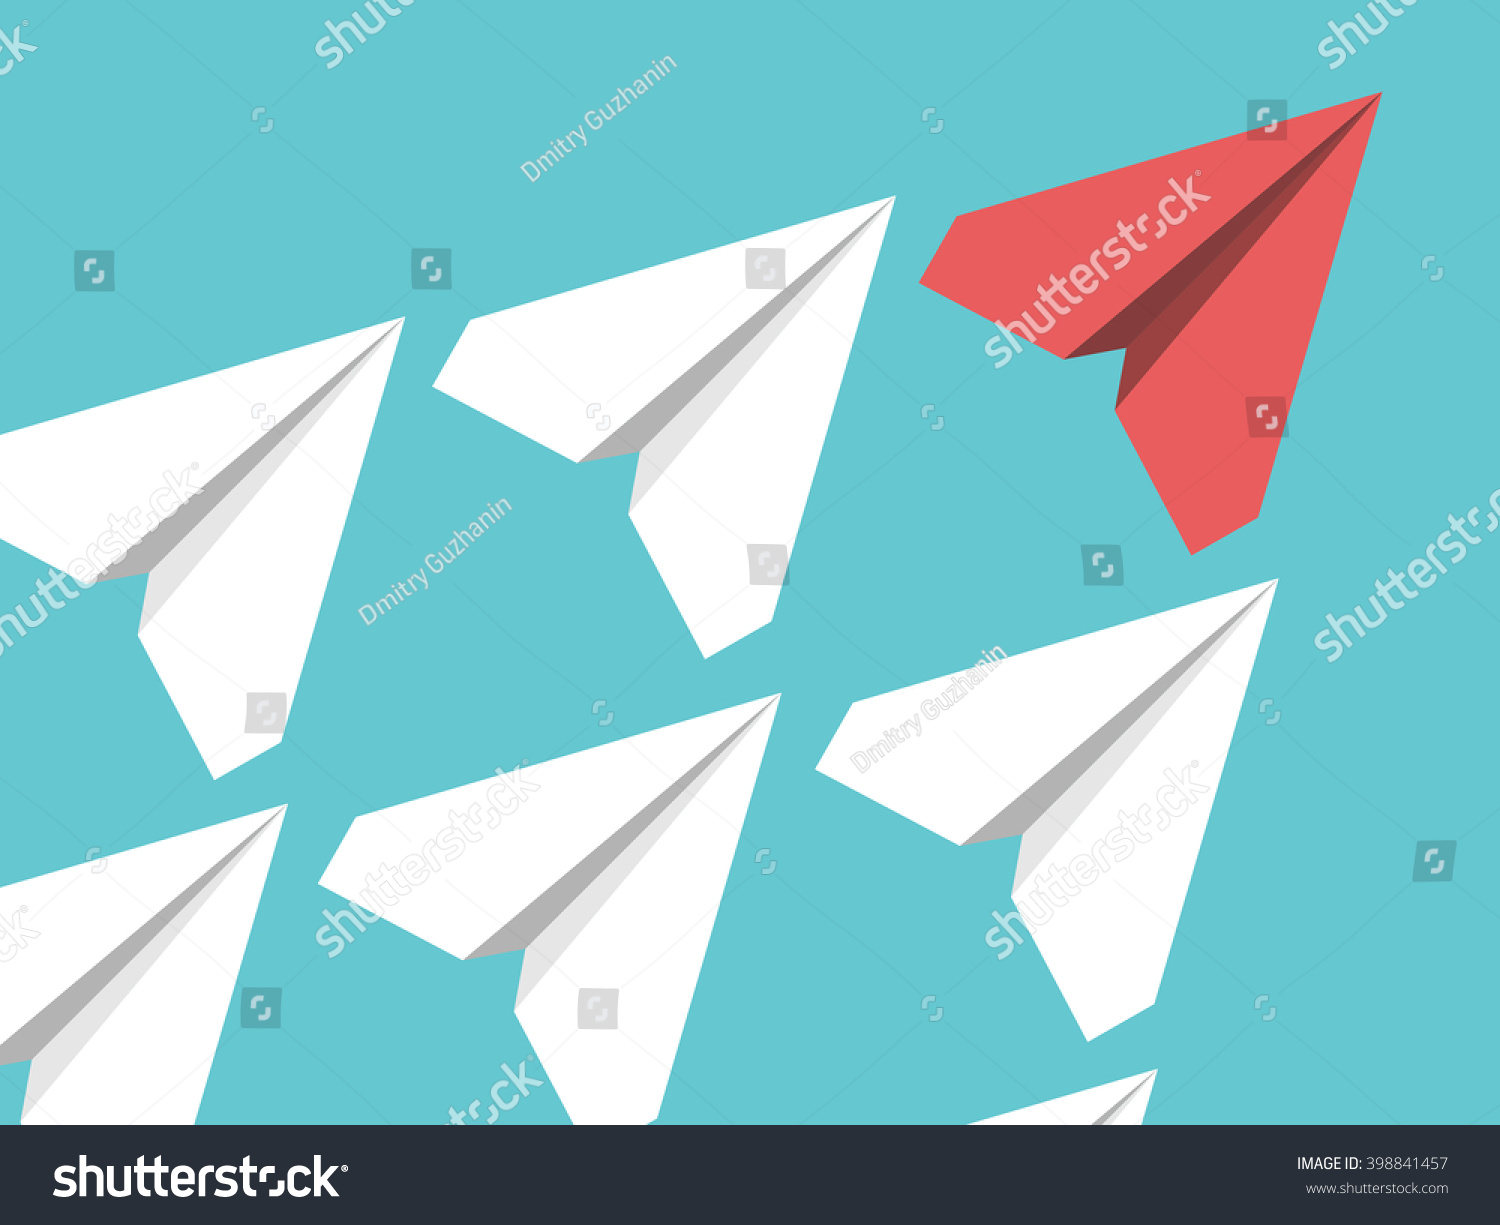 white red paper planes flying turquoise stock vector 398841457 white and red paper planes flying in turquoise blue sky leadership success teamwork